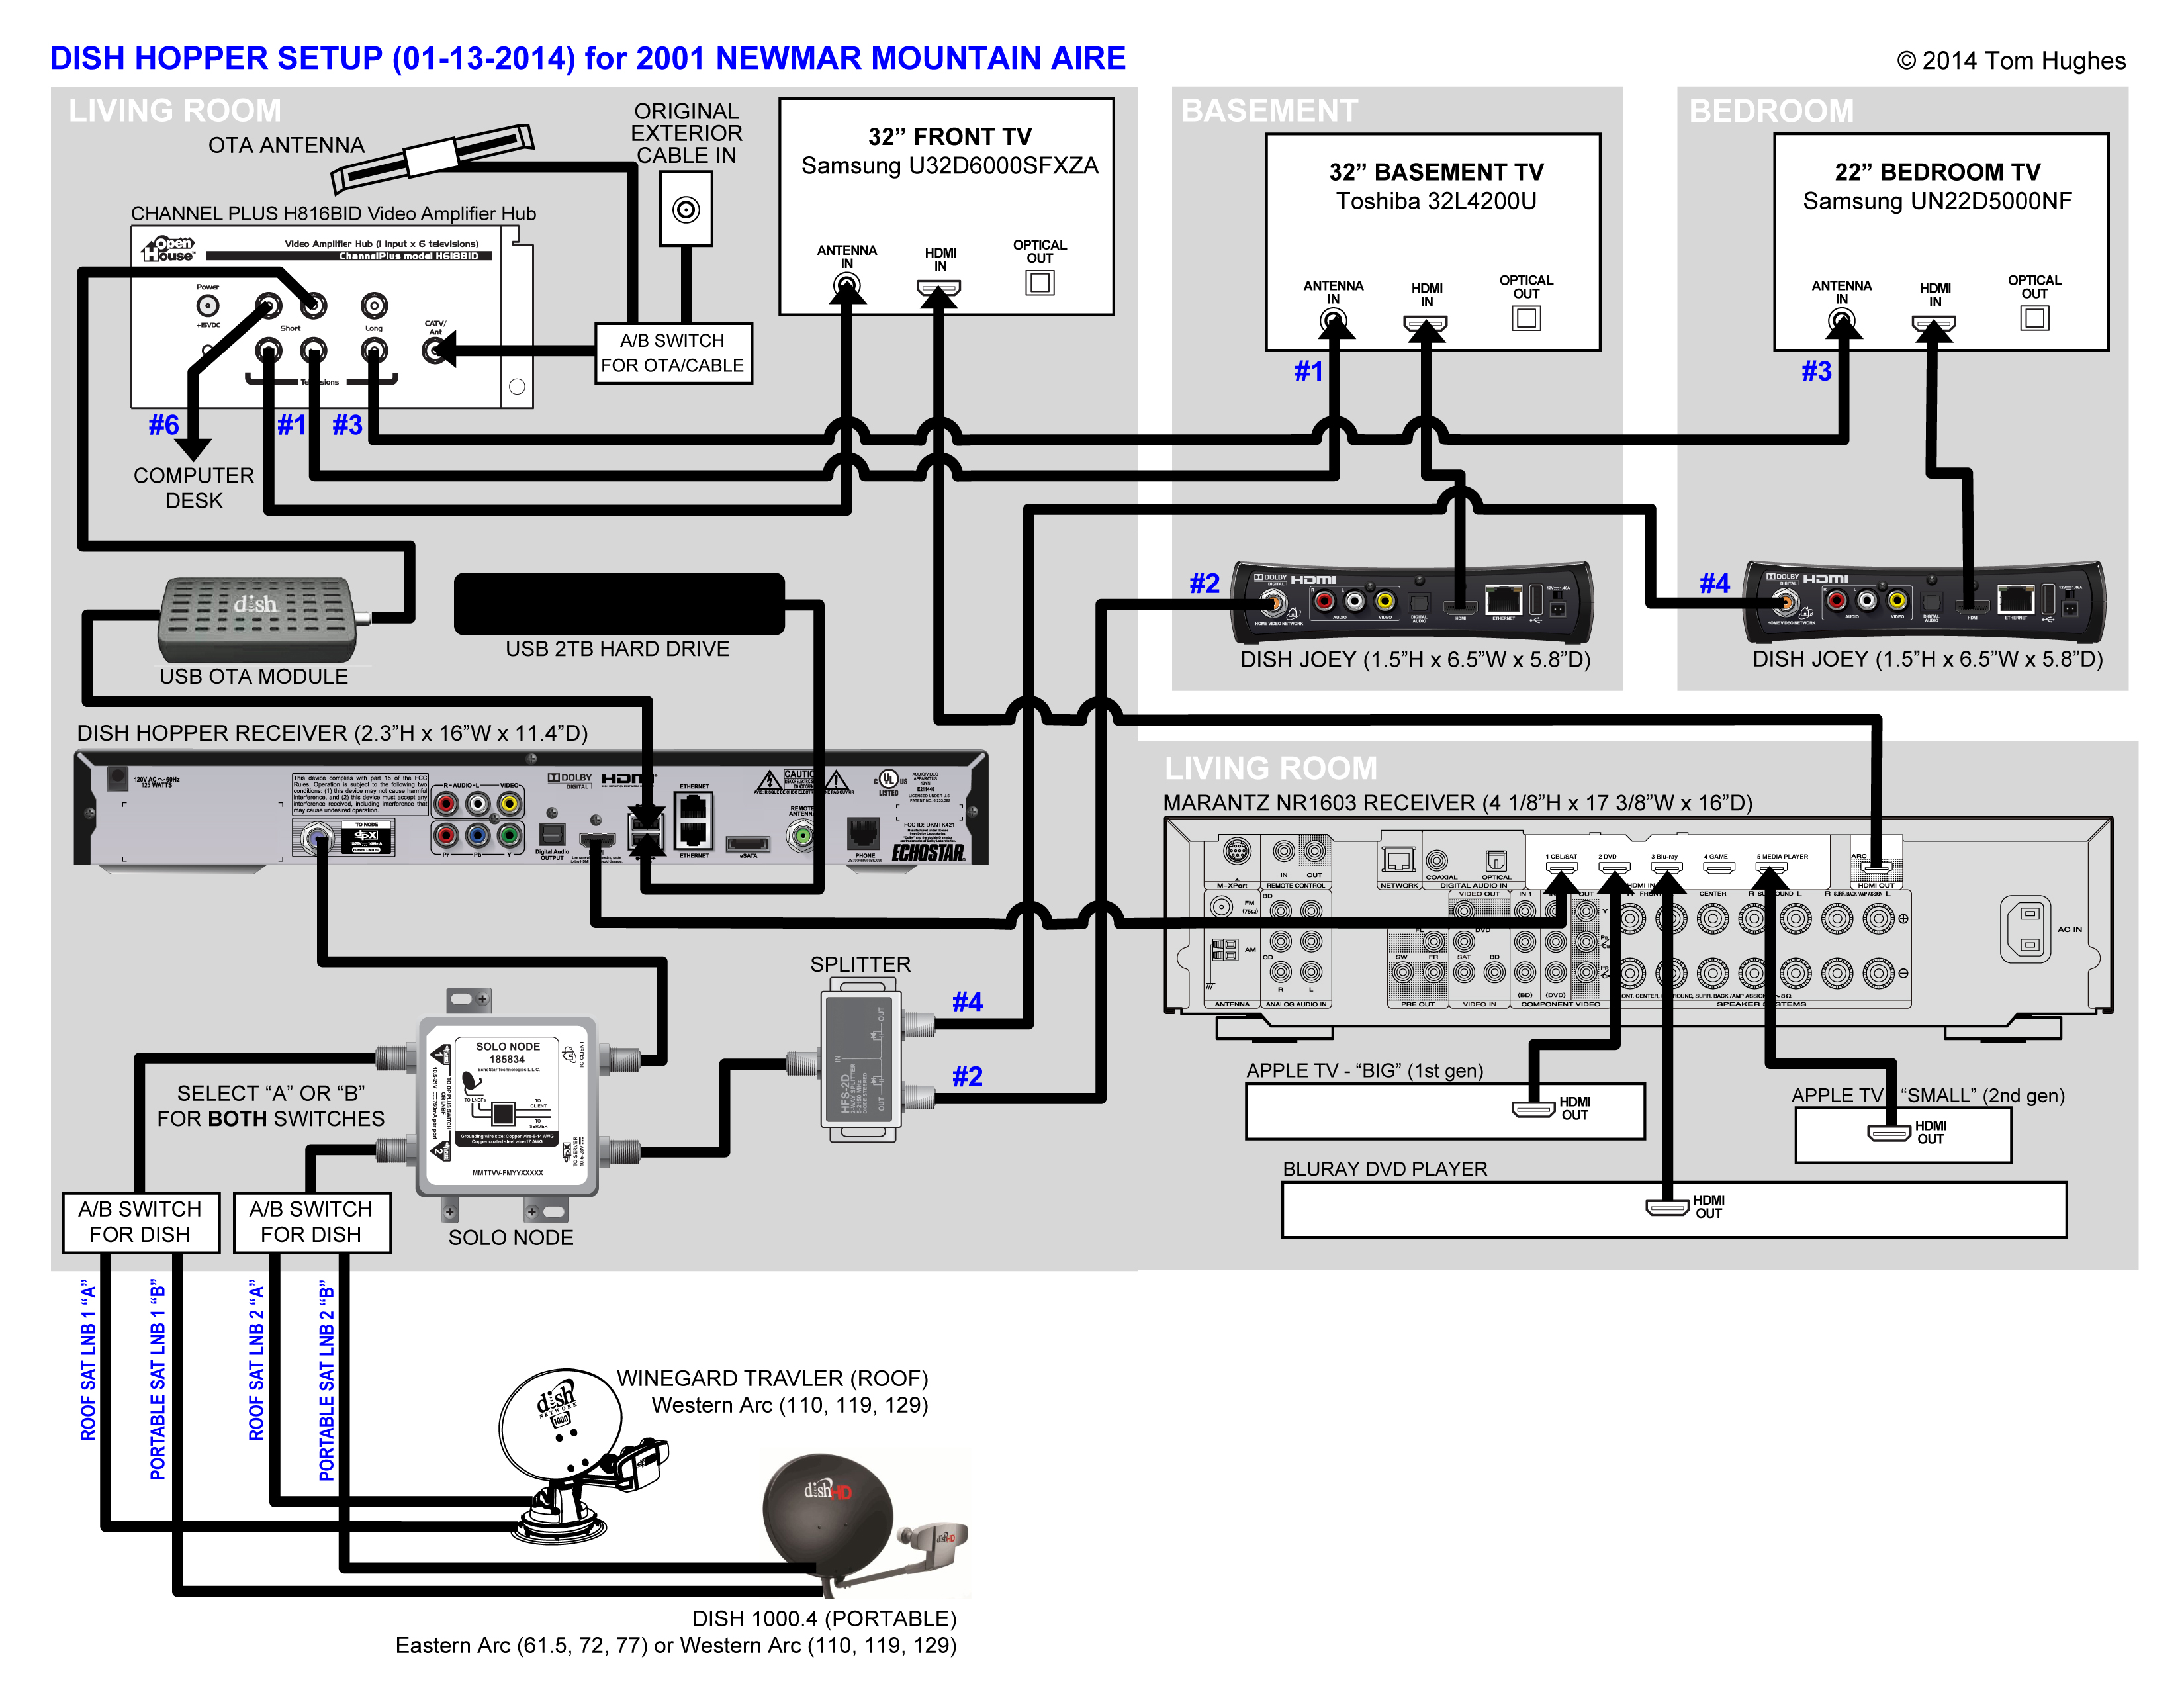 dish hopper manual pdf with New Av System on Xantech Ir Receiver Wiring Diagram also Wiring Wi Fi Arduino Esp8266 as well Dish  work Dvr Wiring Diagram in addition Fire Hydrant Parts Diagram also Bell Expressvu Hd Receiver Setup.